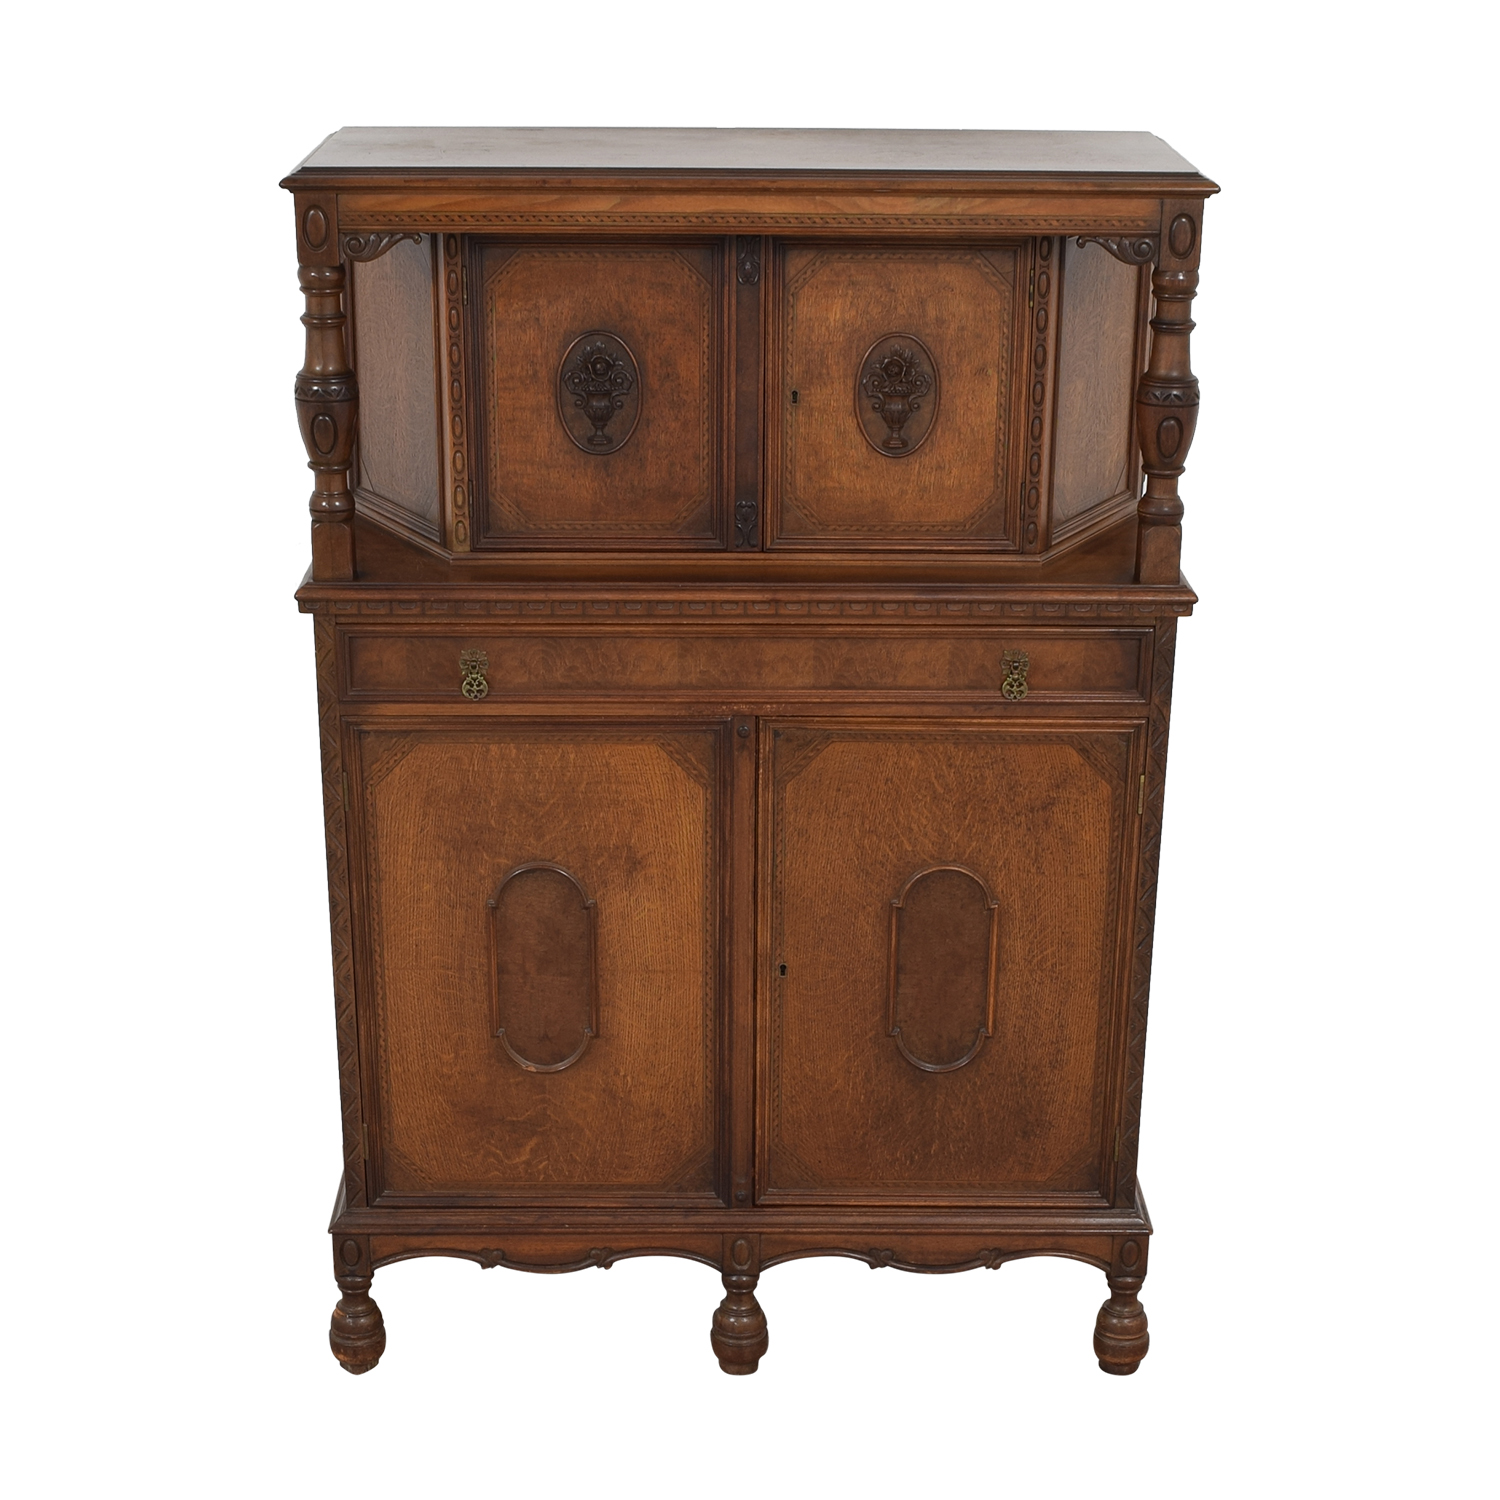 Vintage Armoire Cabinet Cabinets & Sideboards